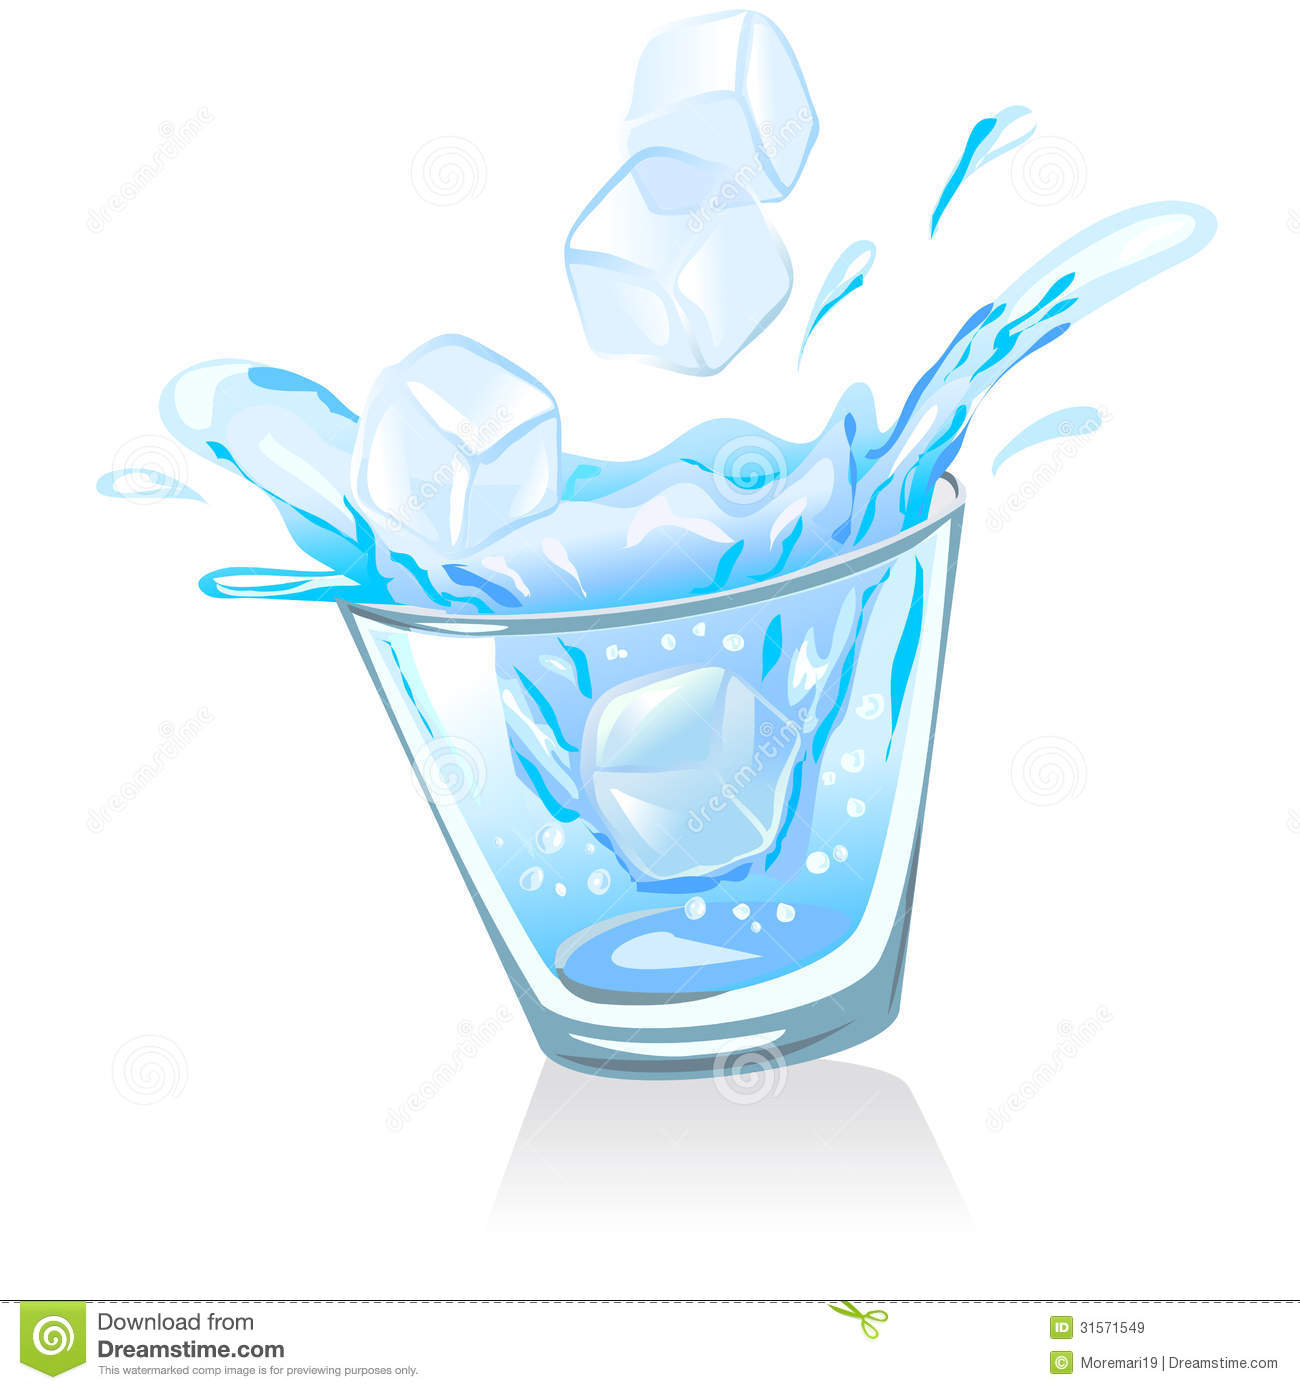 ice water vector stock illustrations 38 601 ice water vector stock illustrations vectors clipart dreamstime dreamstime com